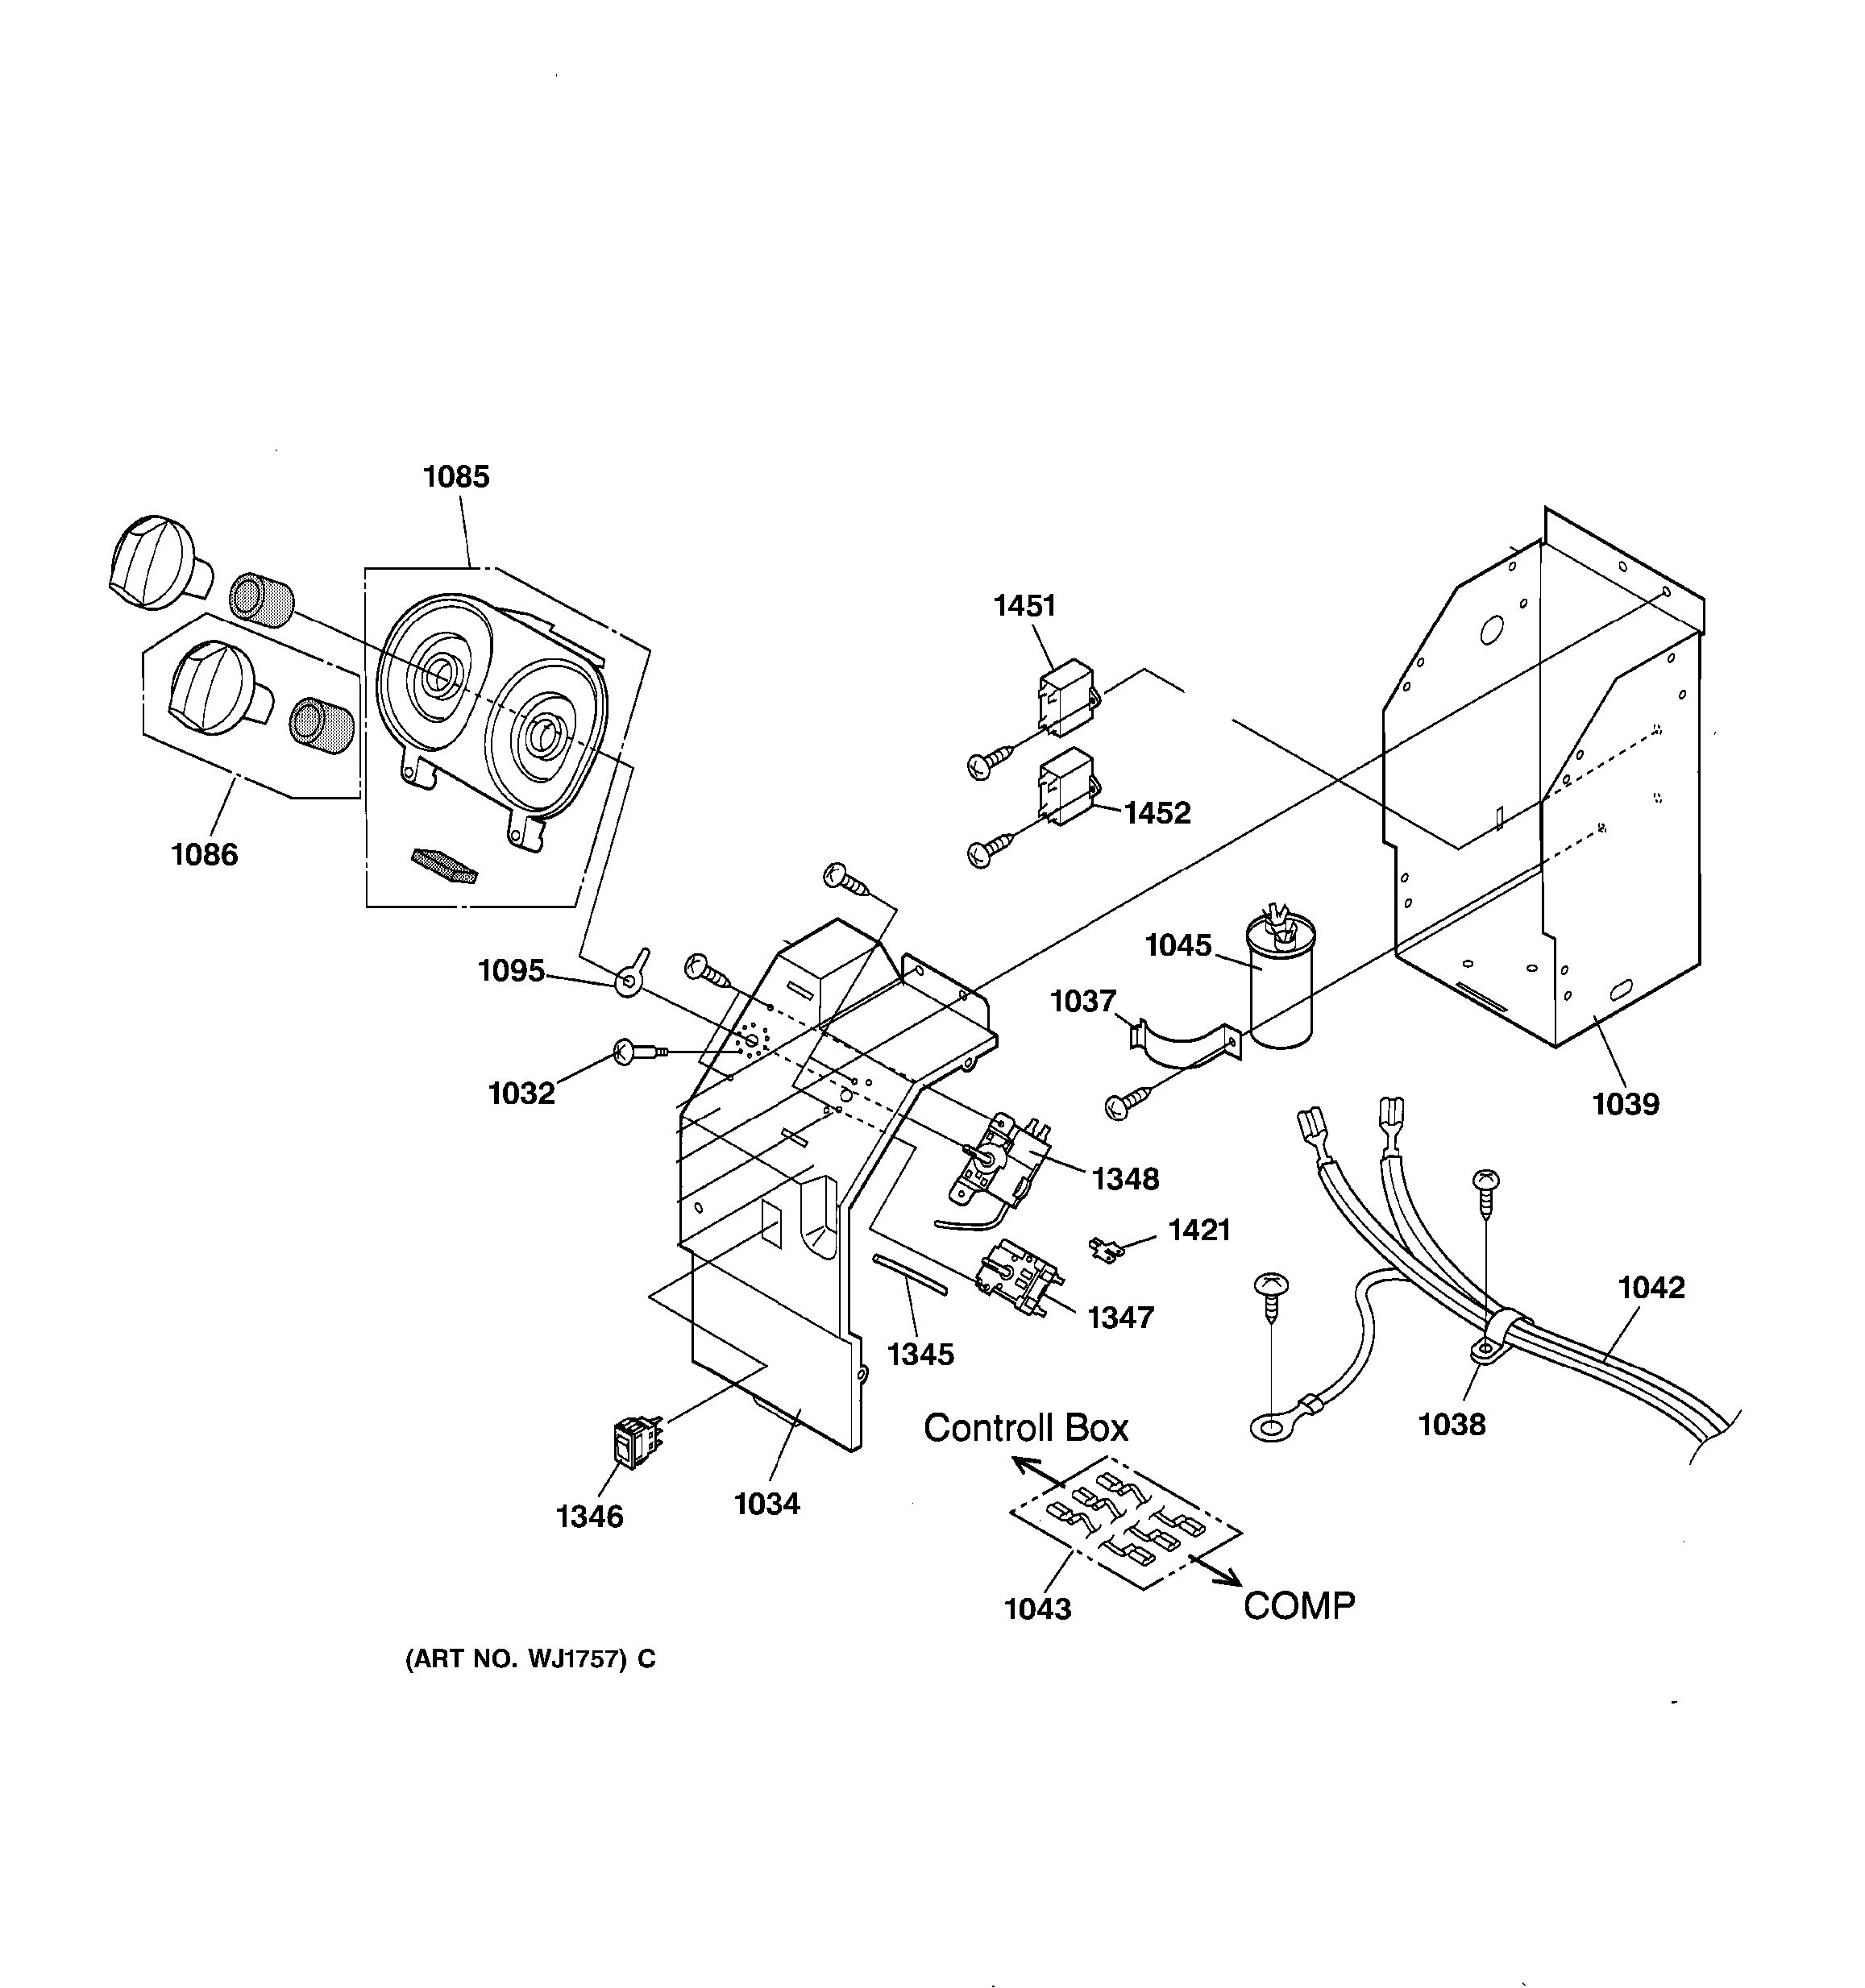 Assembly View For Control Parts